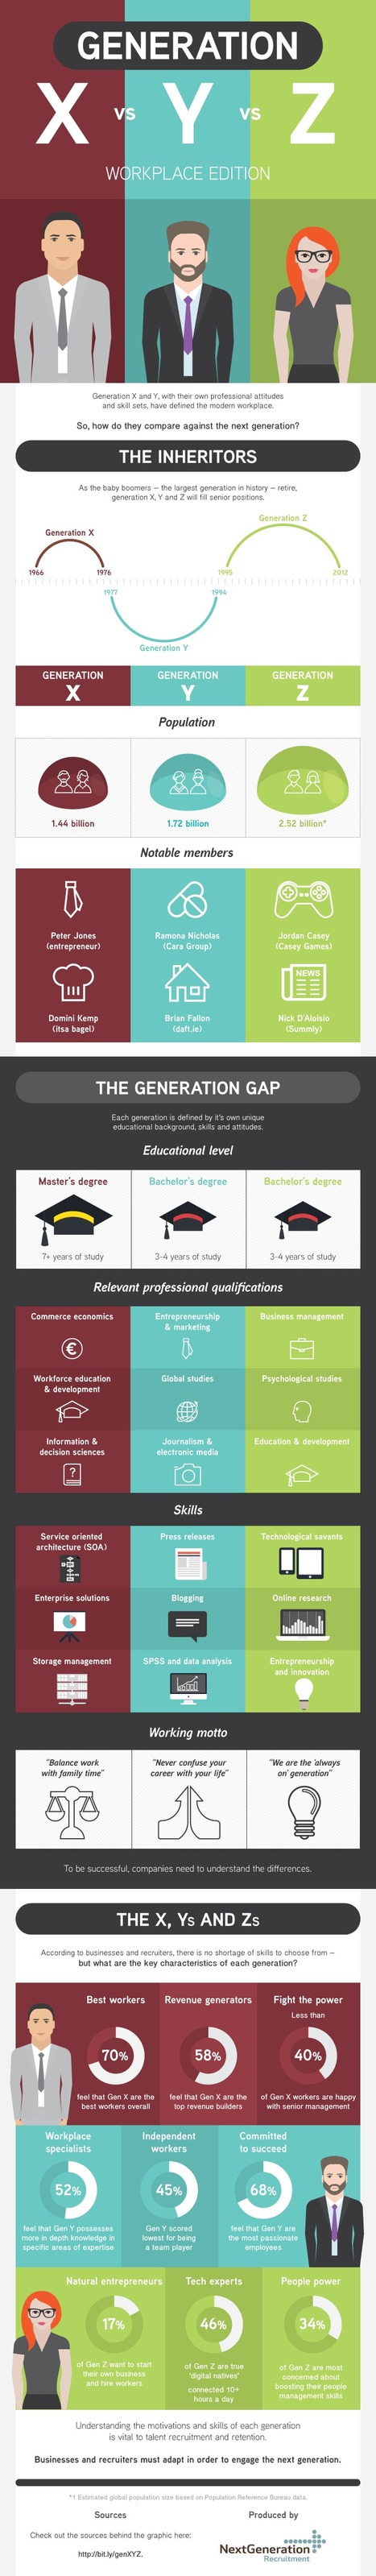 Generation X vs Y vs Z Workplace  (#Infographic) | Future leadership for learning | Scoop.it